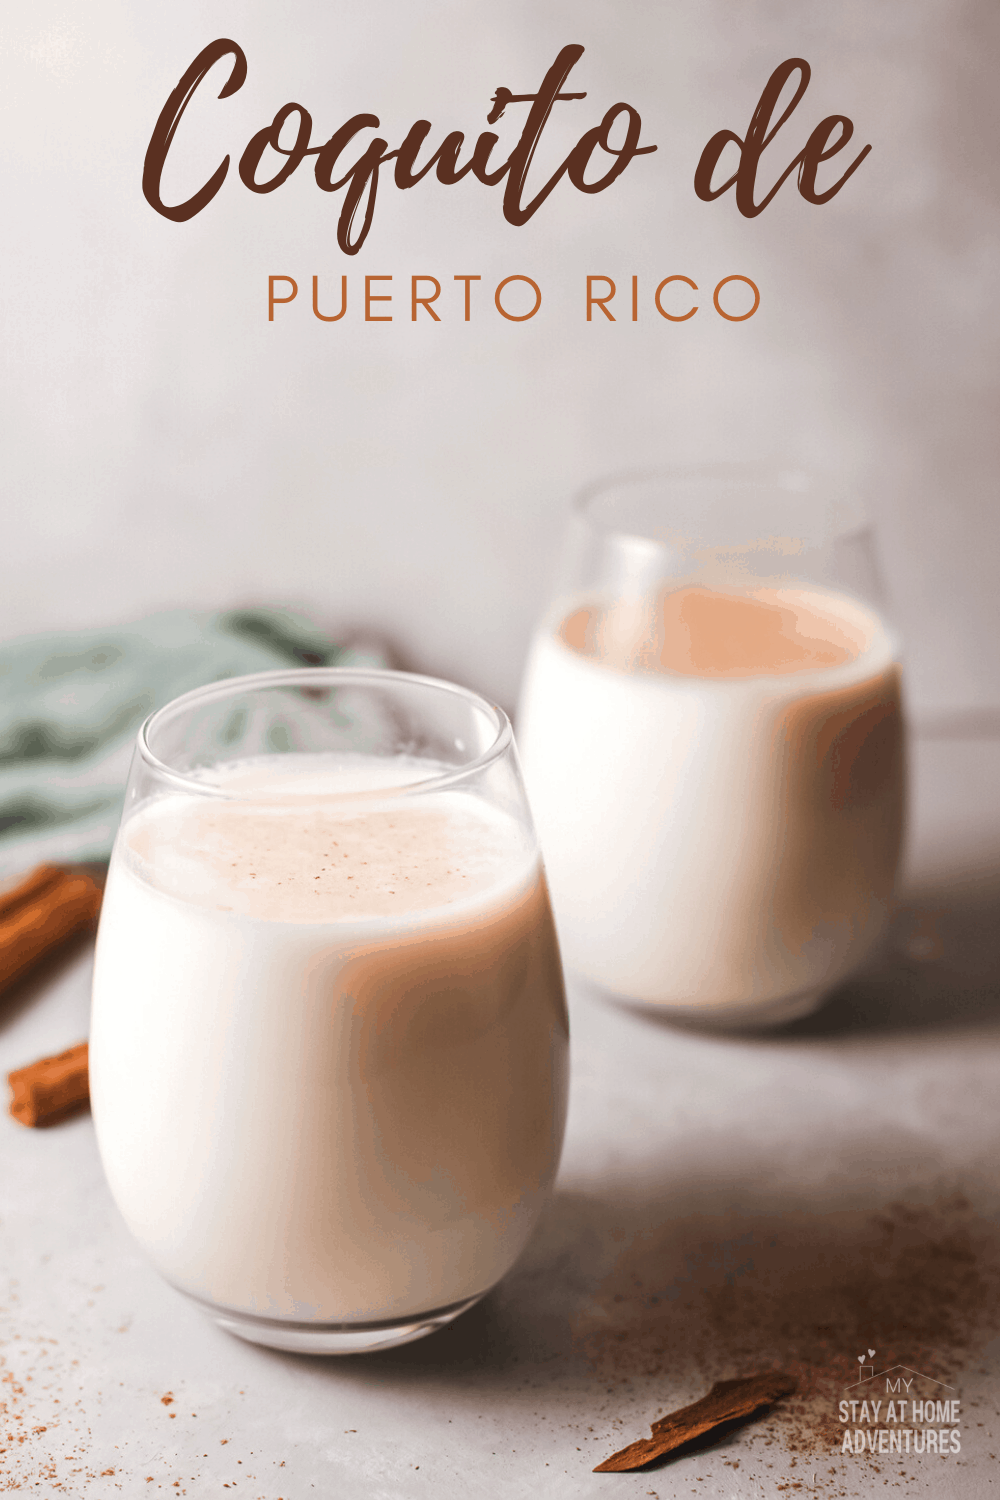 Traditional Coquito recipe with no eggs - Delicious Puerto Rican style coquito recipe. via @mystayathome